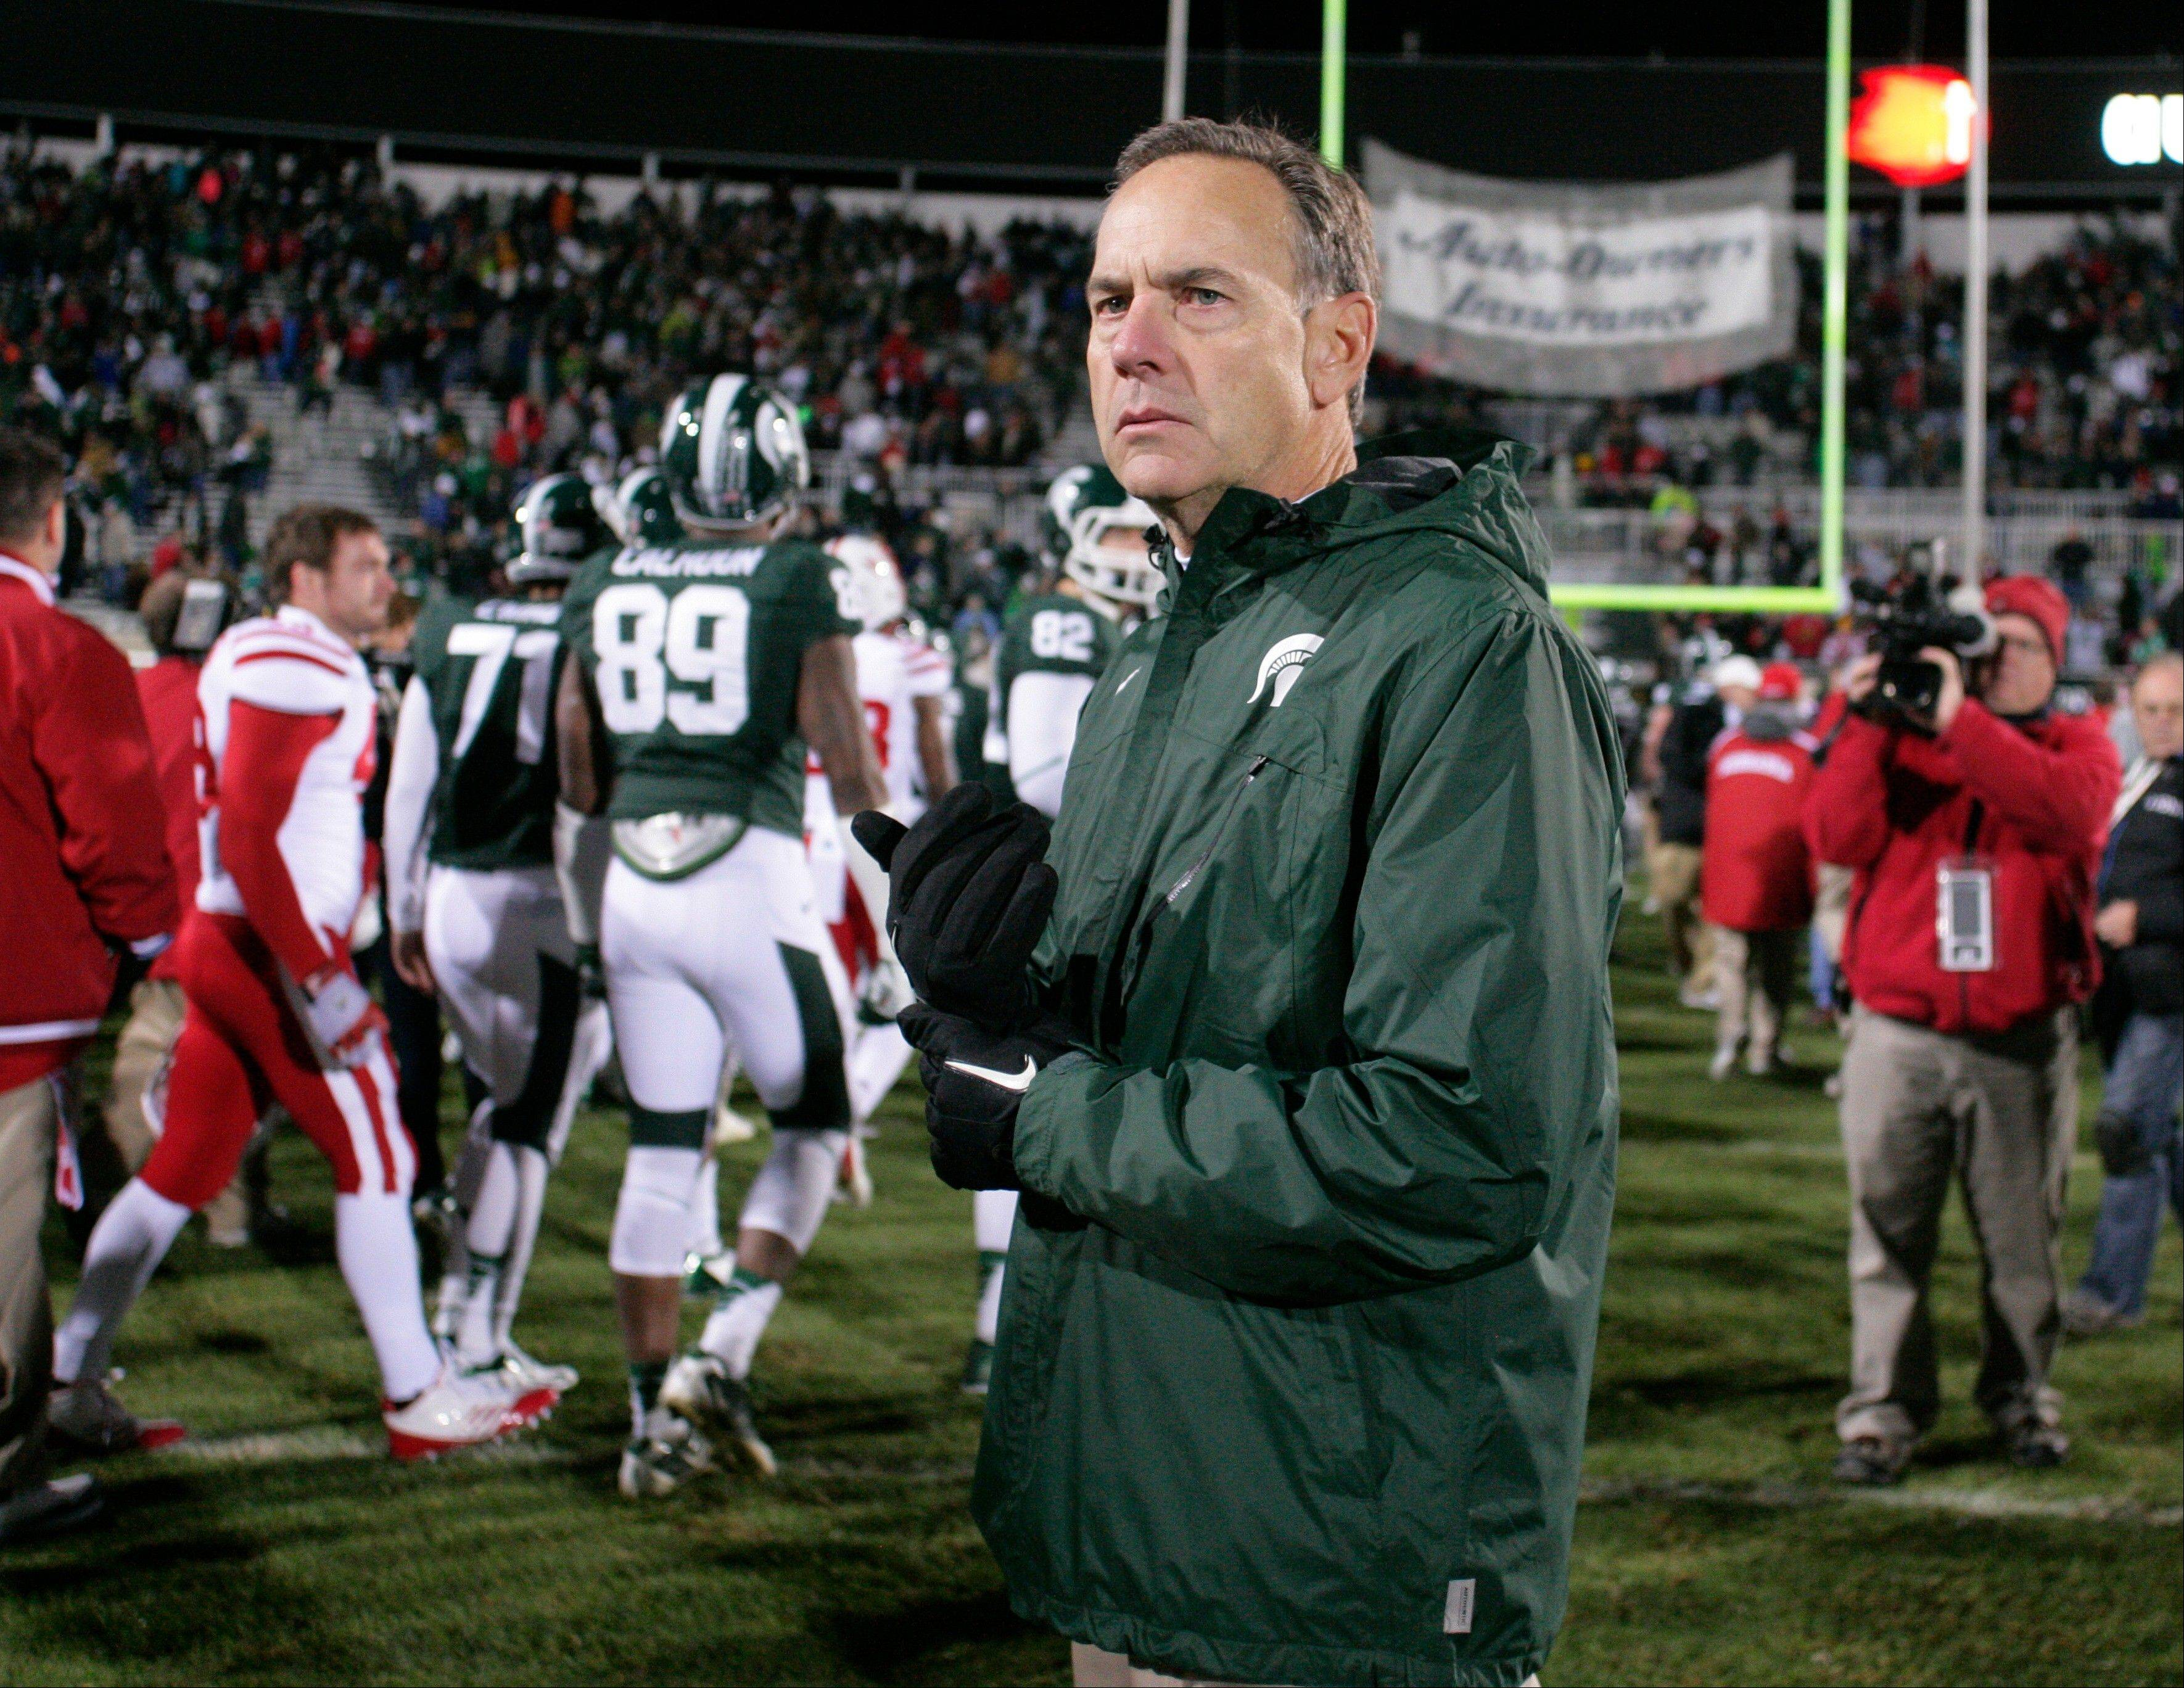 Michigan State coach Mark Dantonio pauses on the field Saturday following a 28-24 loss to Nebraska in East Lansing, Mich.